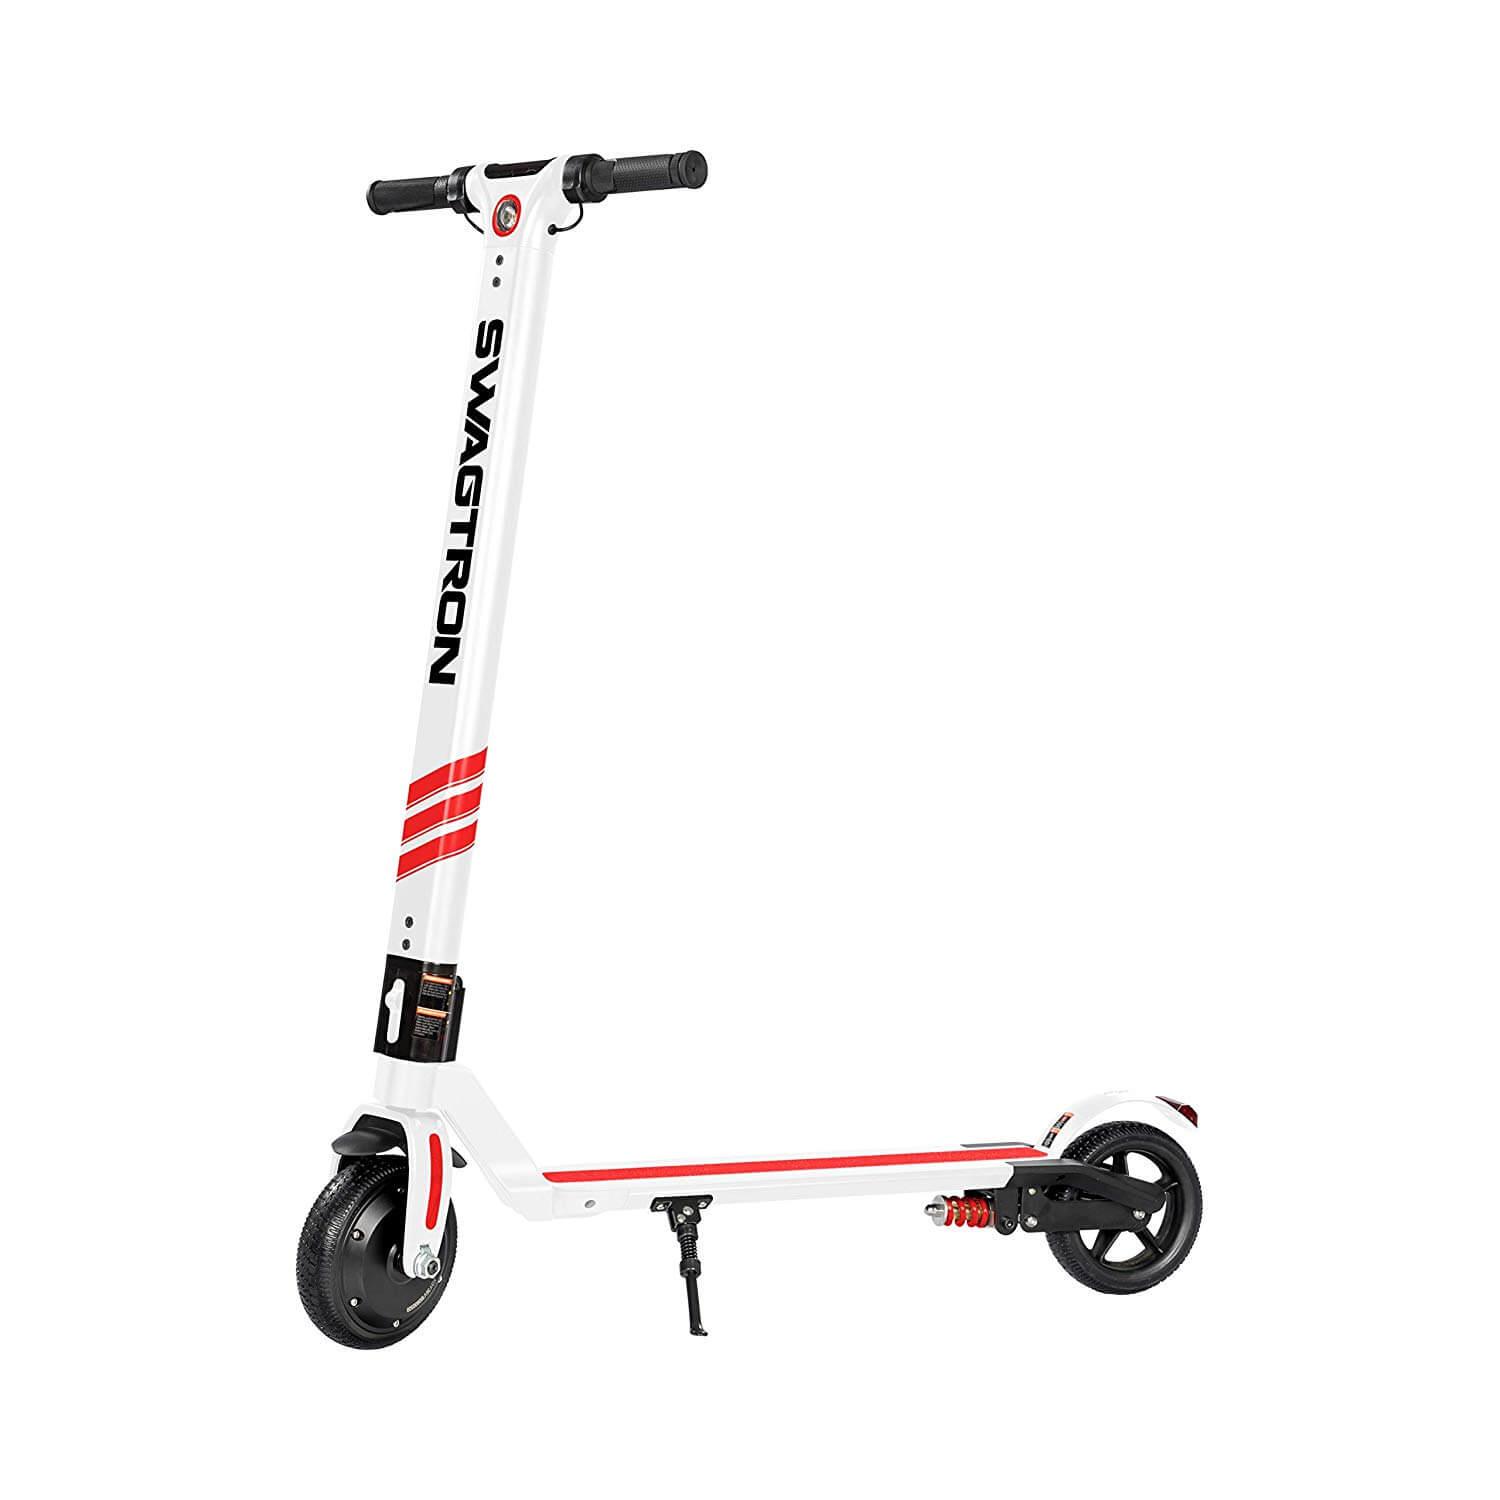 Swagtron Swagger Pro Adult Electric Scooter Review